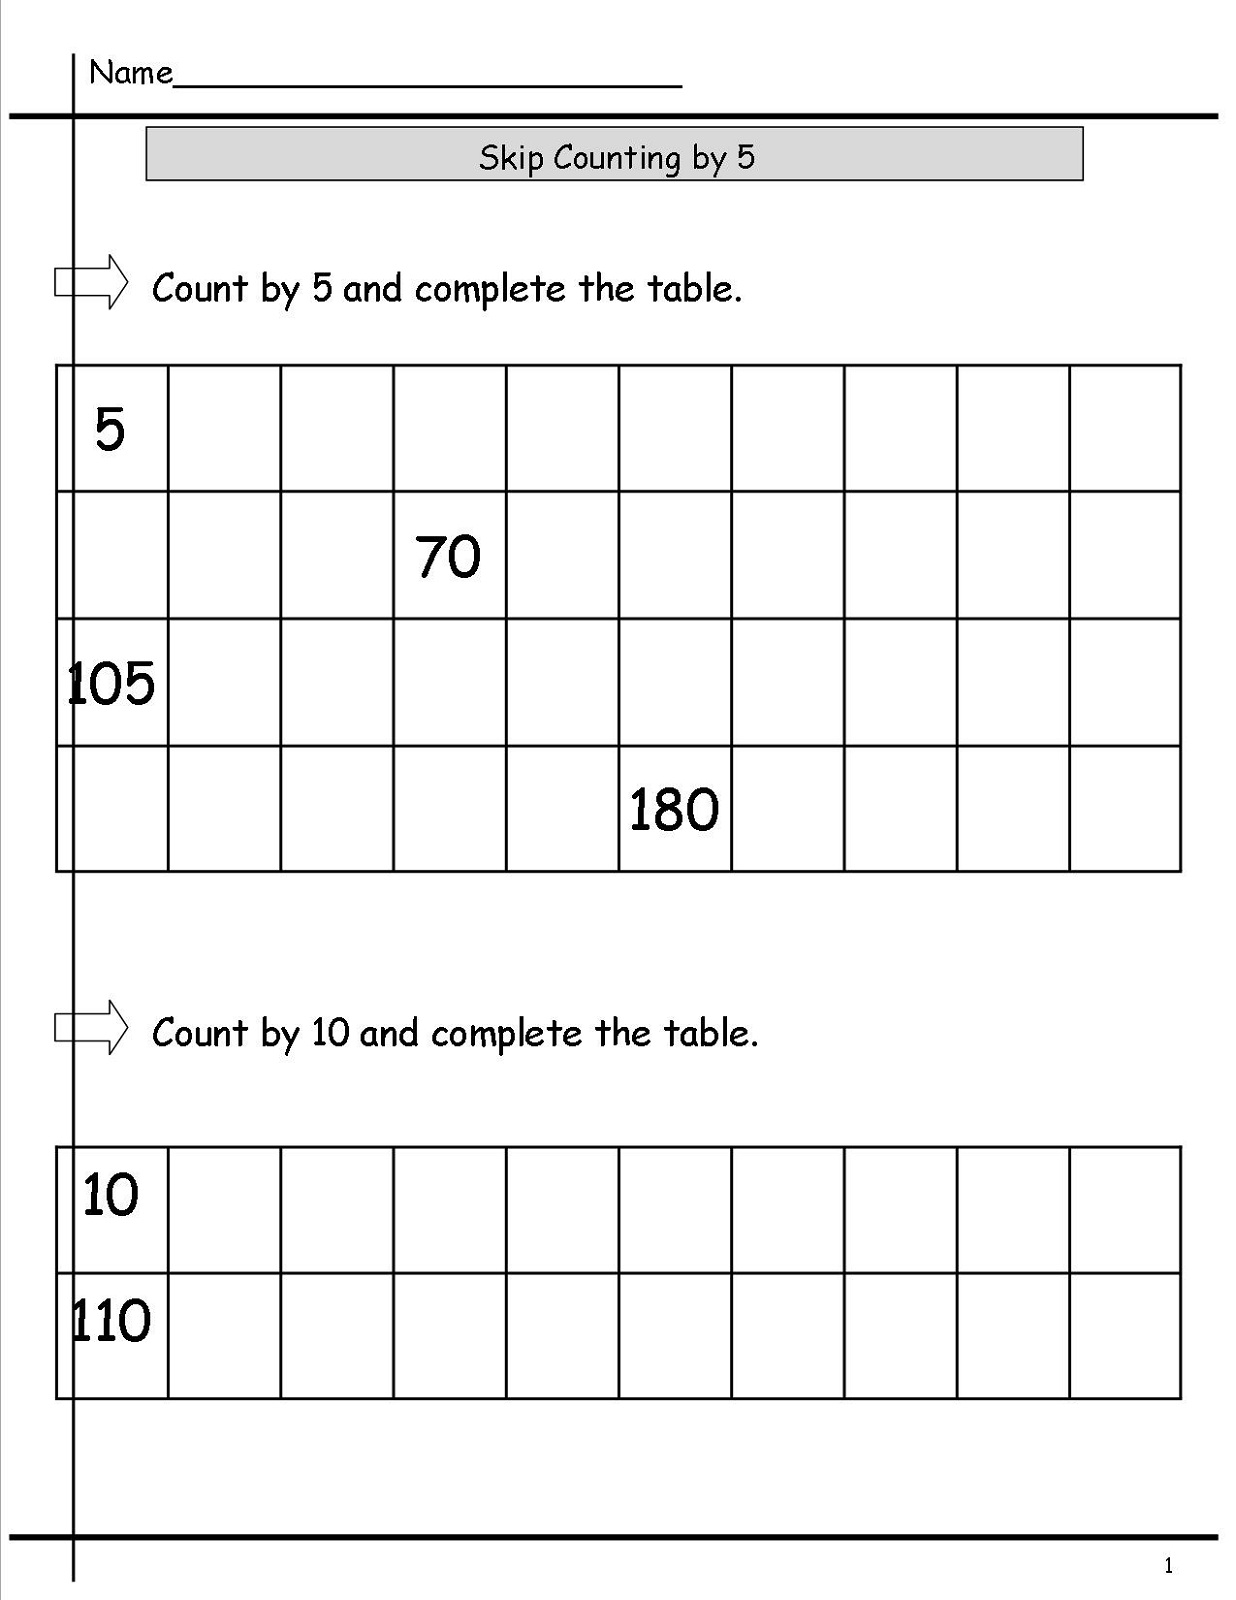 count-by-5s-worksheet-simple